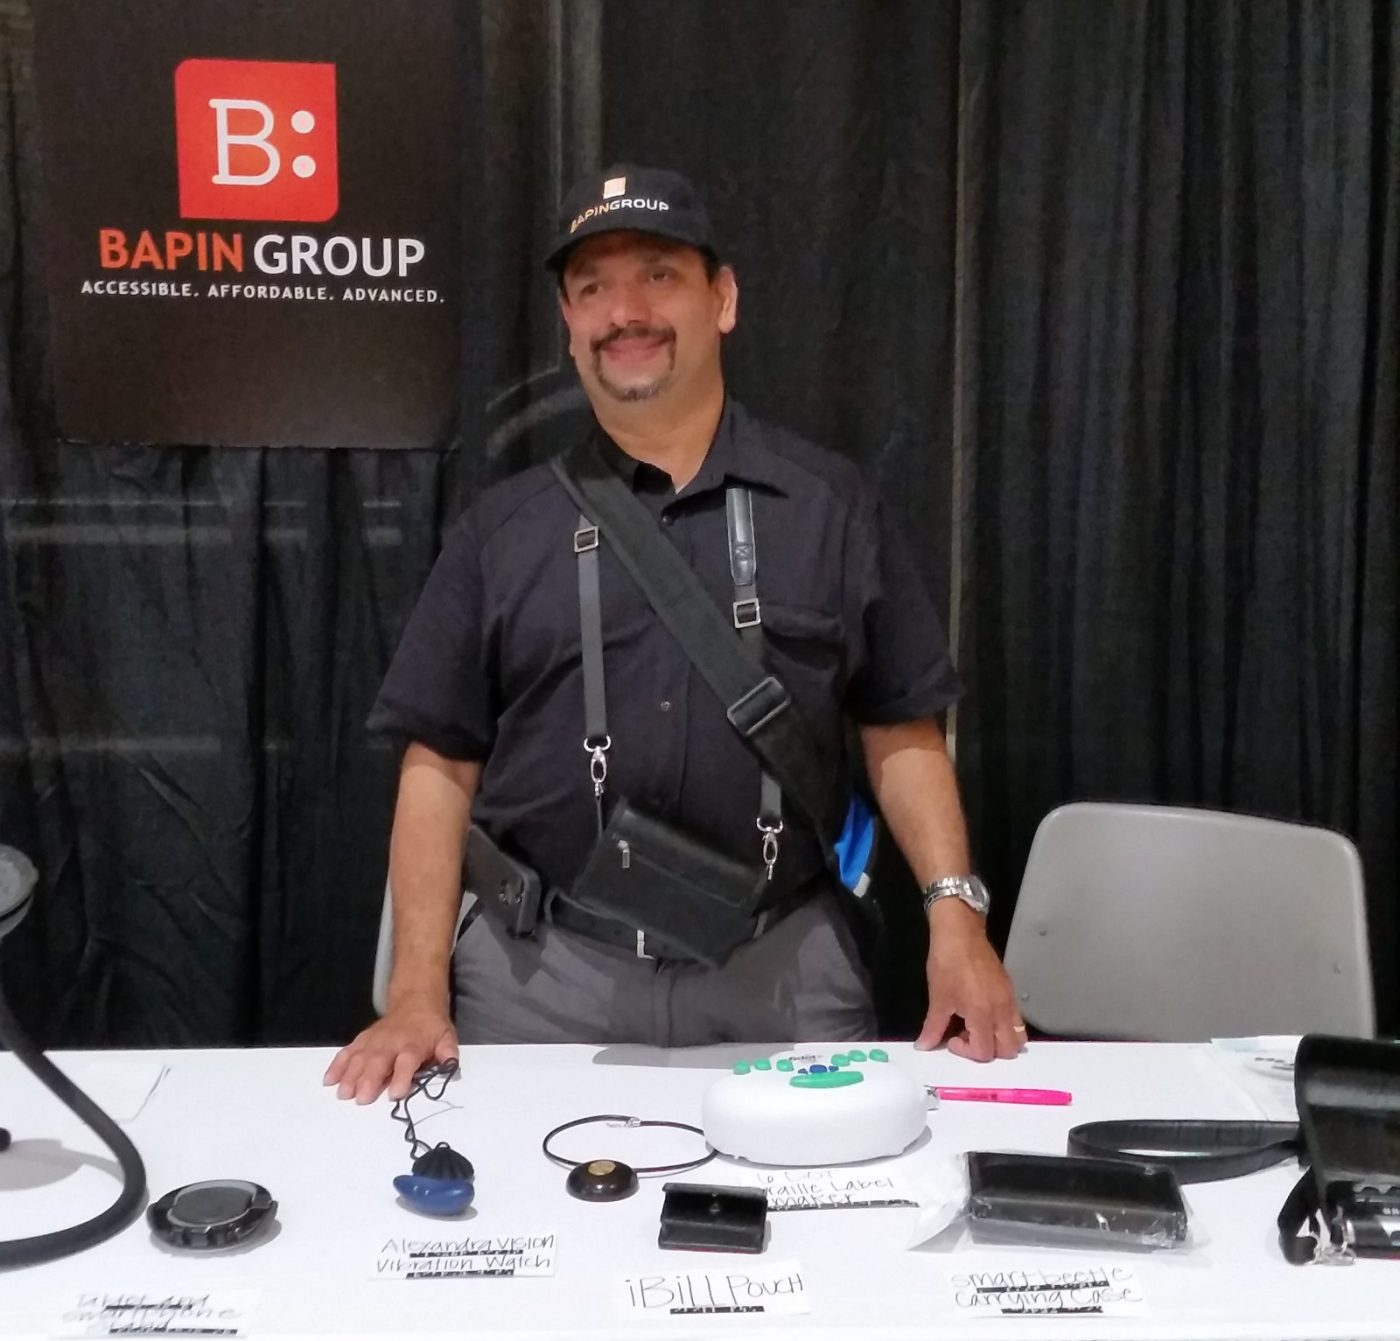 """Anindya Bhattacharyya, Bapin, wears a black shirt and hat and stands in front of a black backdrop. A sign reading """"Bapin Group. Accessible. Affordable. Advanced."""" appears above his left shoulder. In front of Bapin is a white table displaying a number of assistive technology devices."""